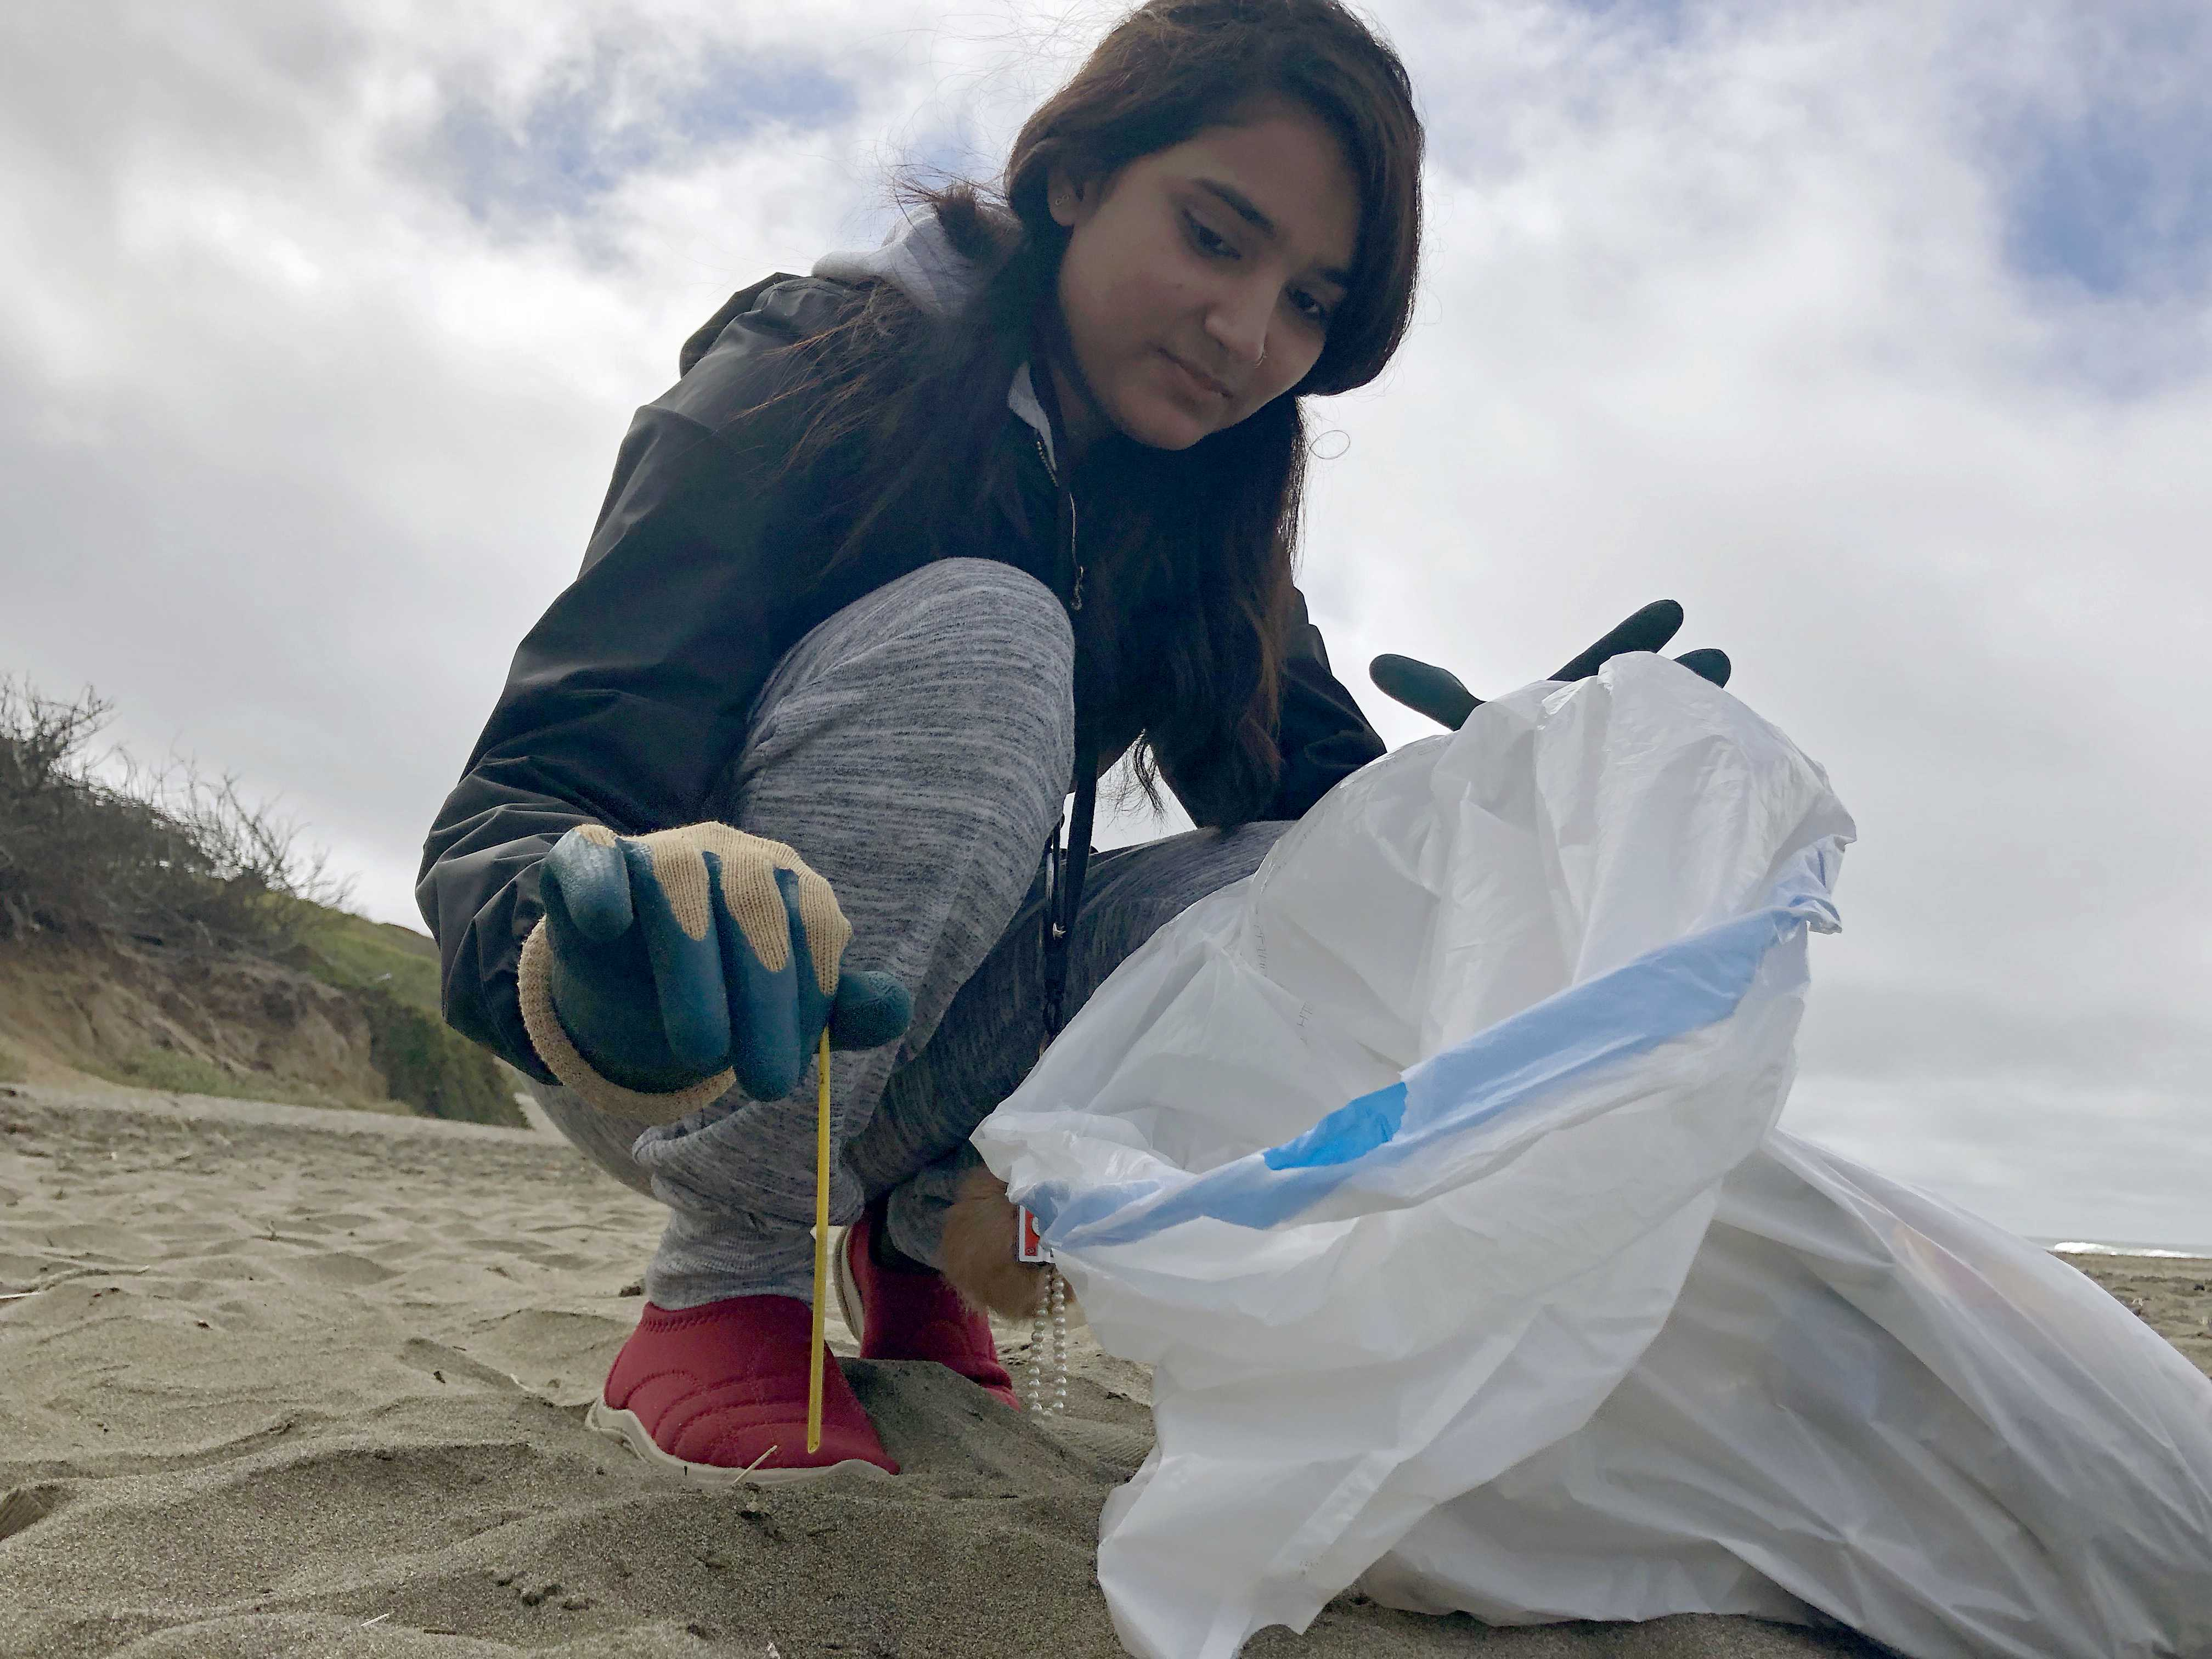 SF State student Sawara Bhattarai picks up a straw at Fort Funston during the California Coastal Cleanup day on Saturday, Sept. 15. Along with 10 other students, Bhattarai went on this volunteer trip that was a part of the SF State campus recreation program's month-long welcome-back campaign. (Brian Vu/Golden Gate Xpress)